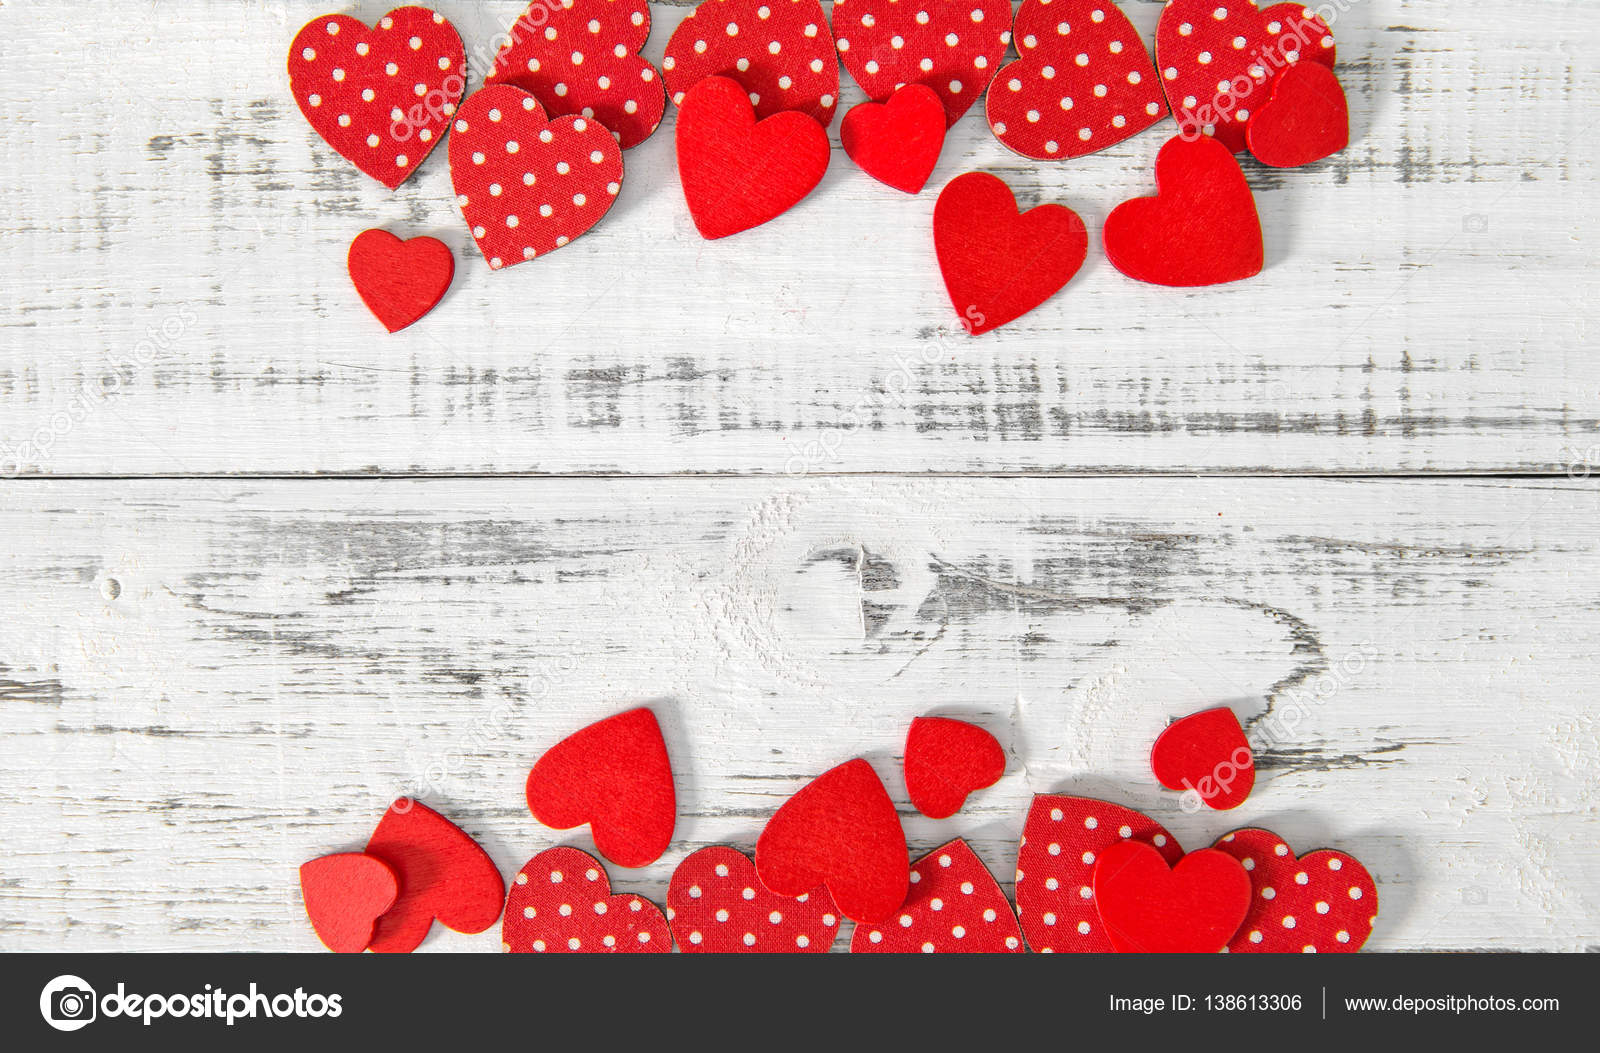 Red Hearts Rustic Wooden Texture Valentines Day Background Stock Photo